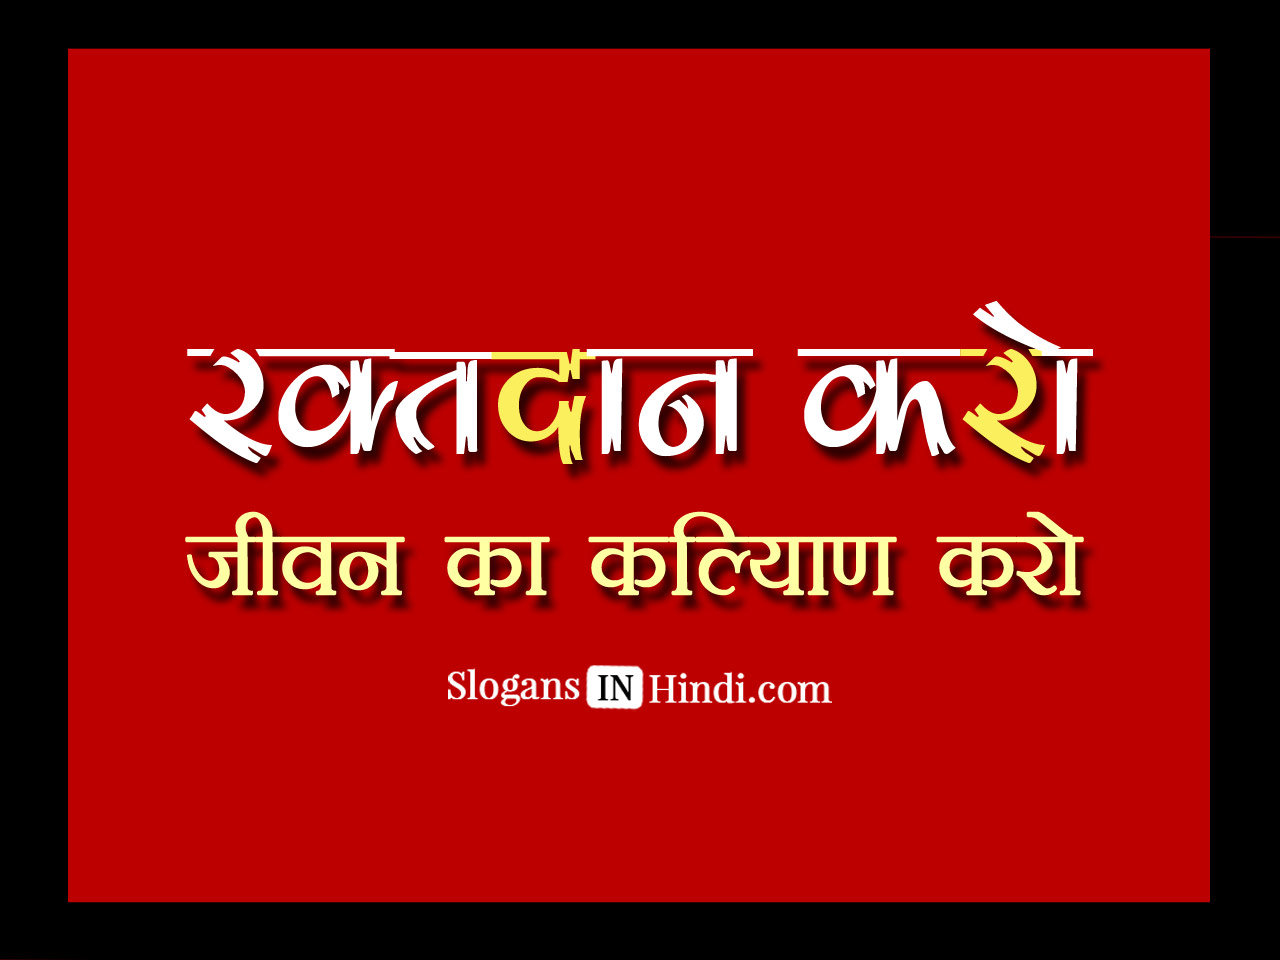 slogans in hindi of dawry system Look at most relevant slogans on dowry system websites out of 149 thousand at keyoptimizecom slogans on #13 /anti/anti-dowry-system-slogans-in-hindi-dowry.